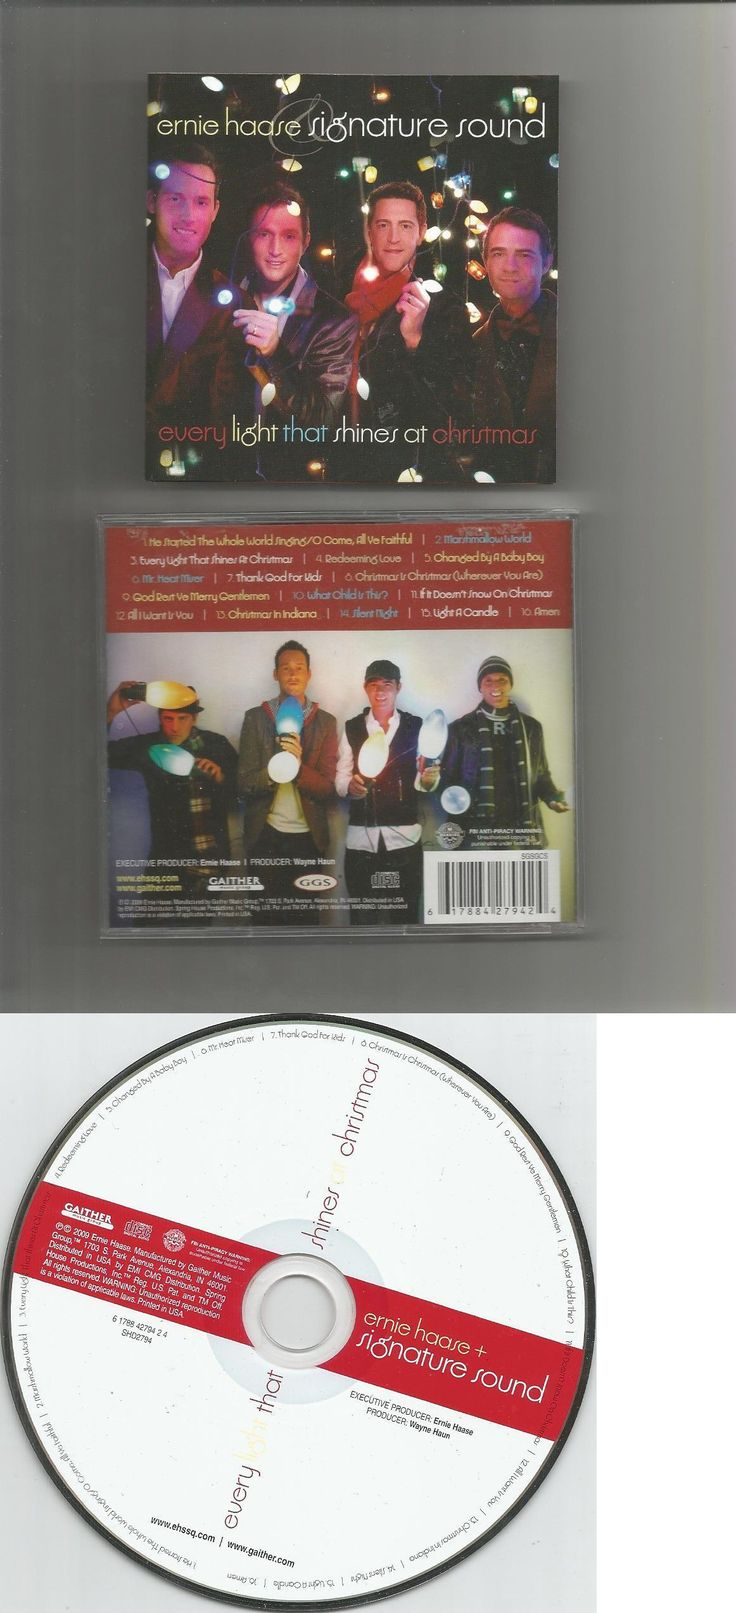 Christmas Songs And Album: Ernie Haase Signature Sound Every Light That Shines At Christmas Gaither Music -> BUY IT NOW ONLY: $1.99 on eBay!